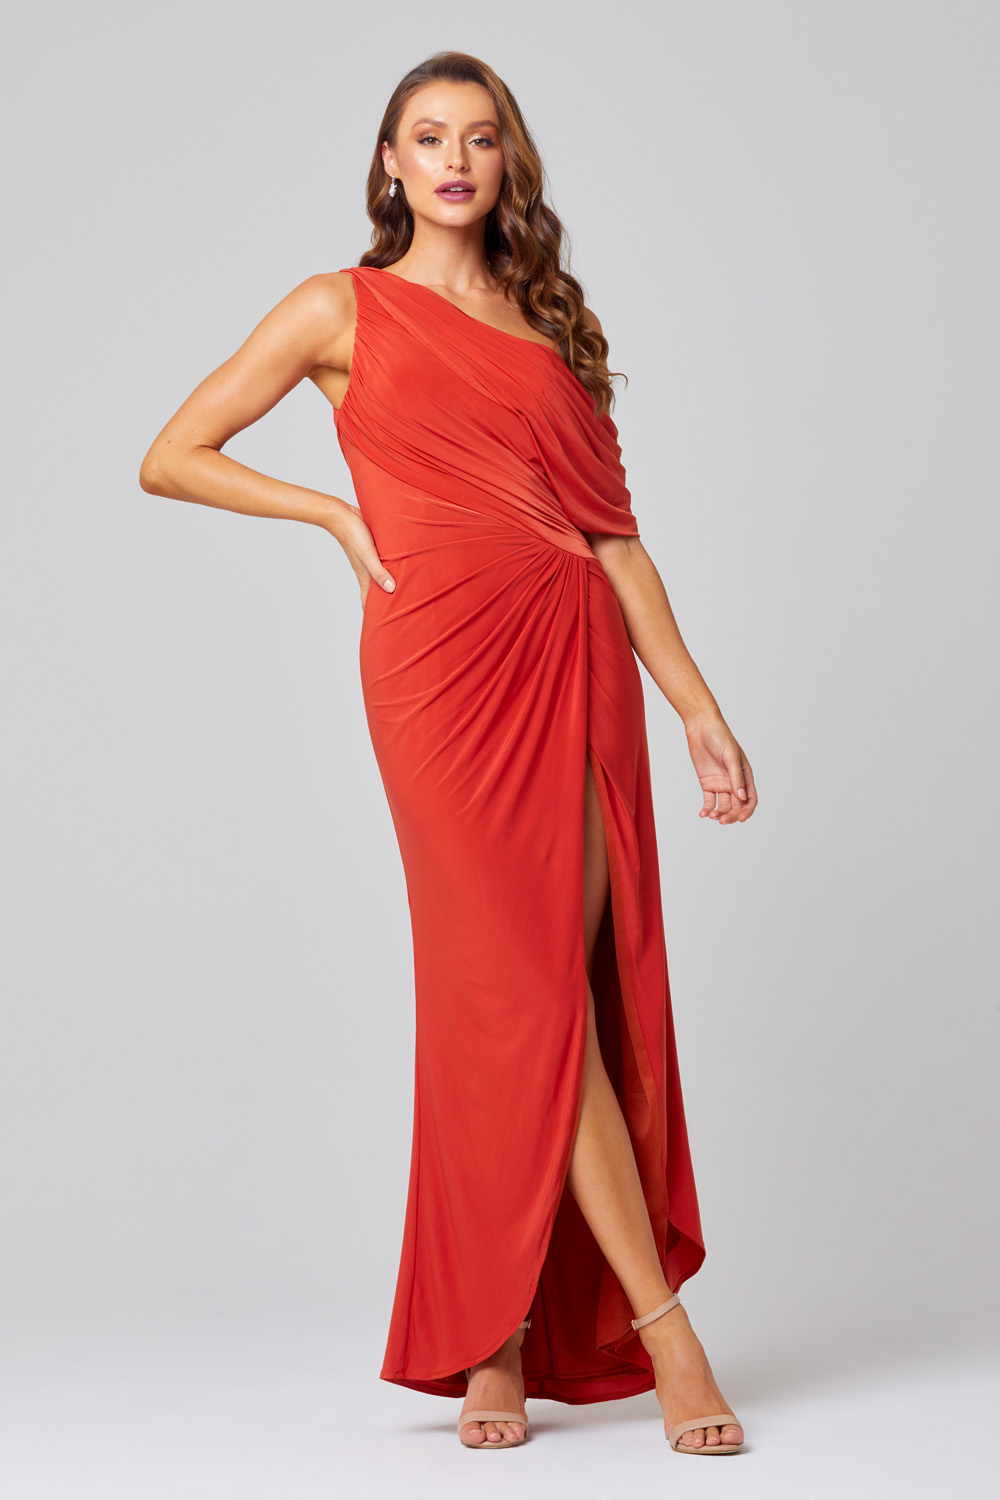 Polly One Shoulder Bridesmaid Dress – TO846 Front Side